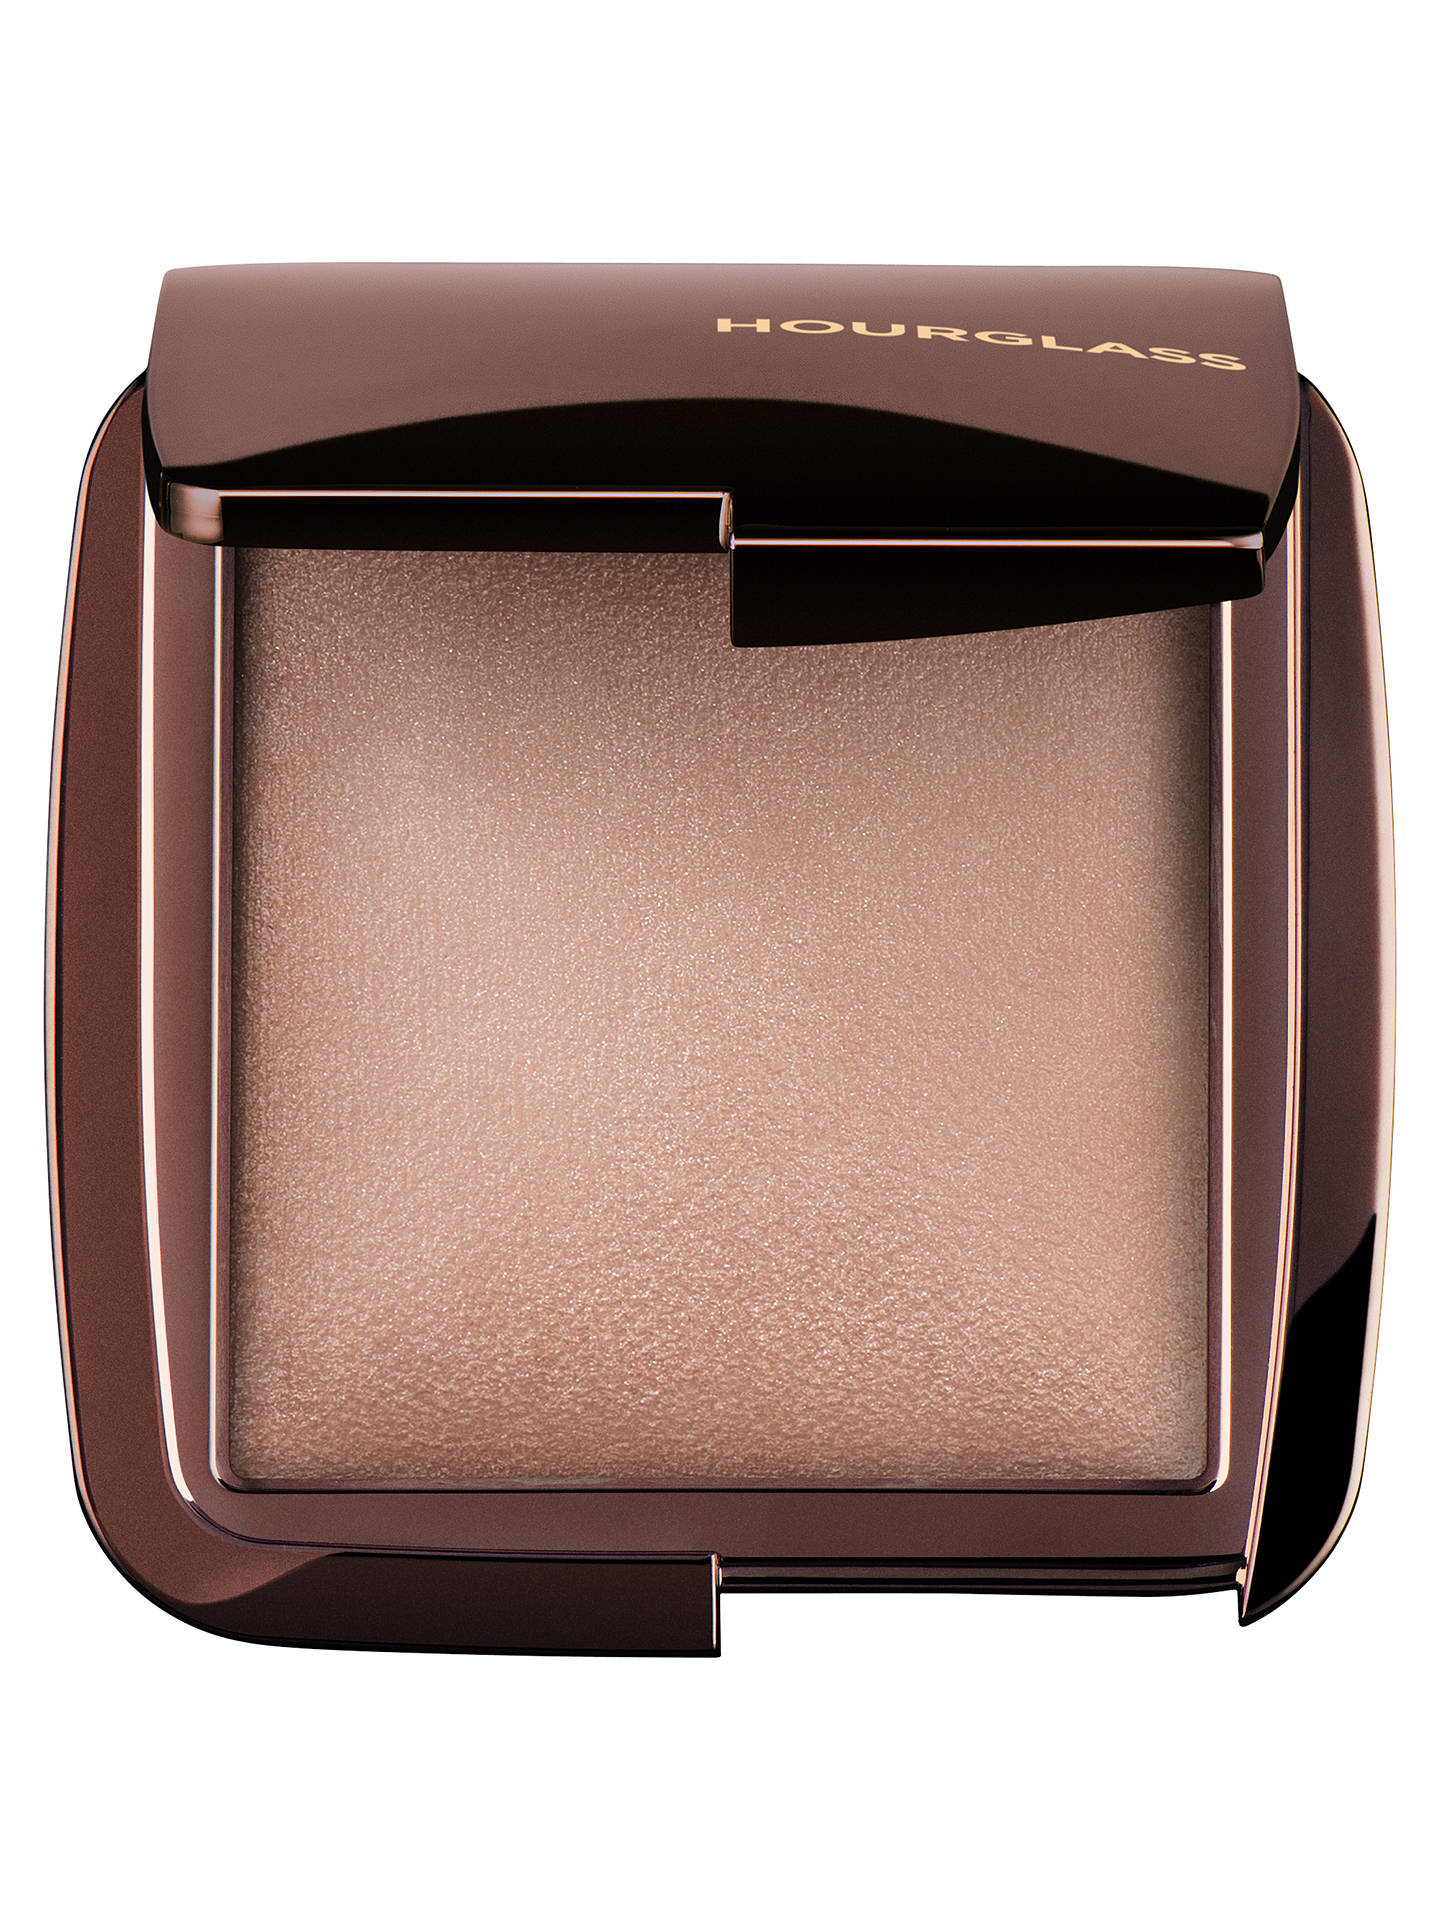 Hourglass Ambient Light Powder, Dim, Neutral Beige by Hourglass